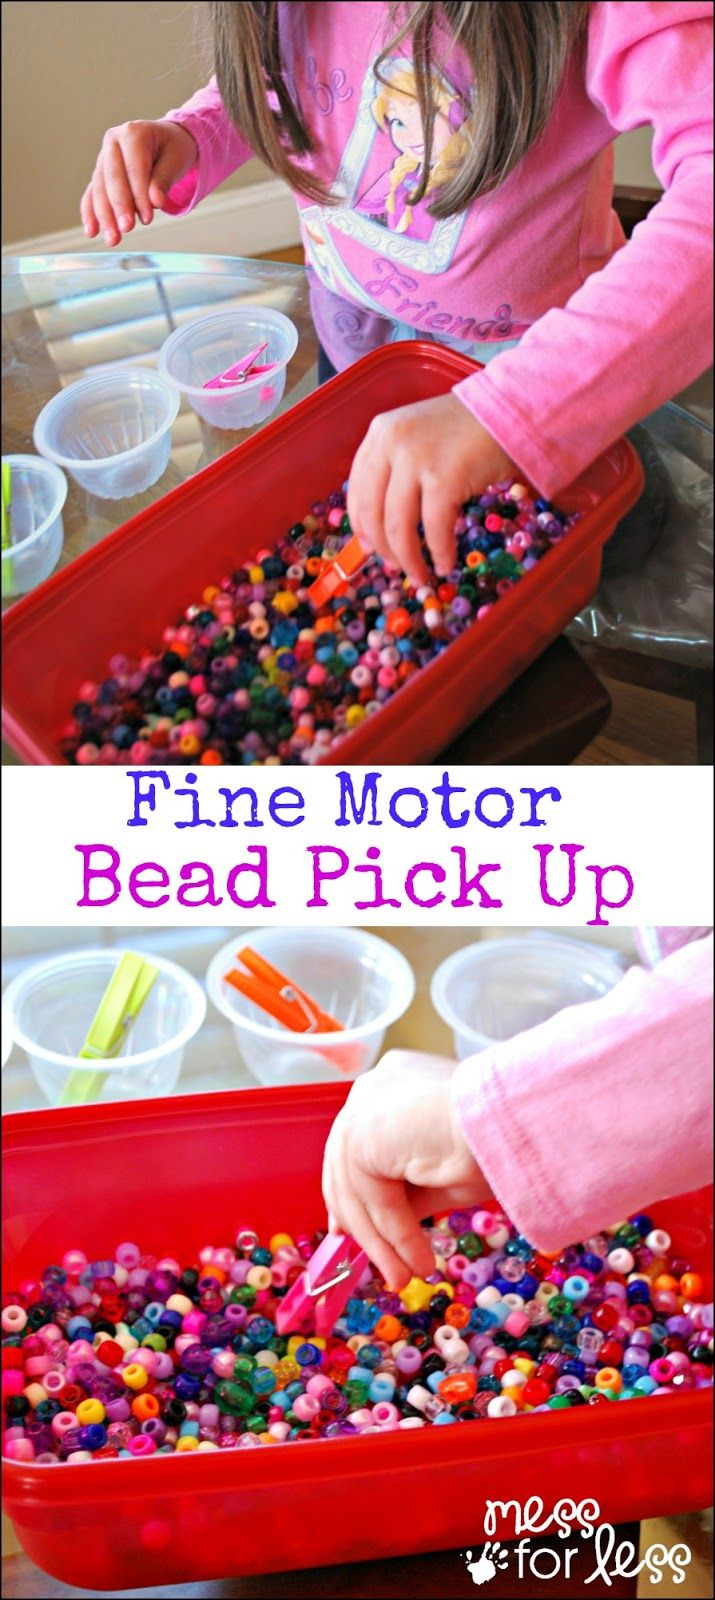 Fine Motor Skills Activity with Beads - a game that takes just a few minutes to set up and lets kids practice their fine motor skills. Repinned by SOS Inc. Resources pinterest.com/sostherapy/.